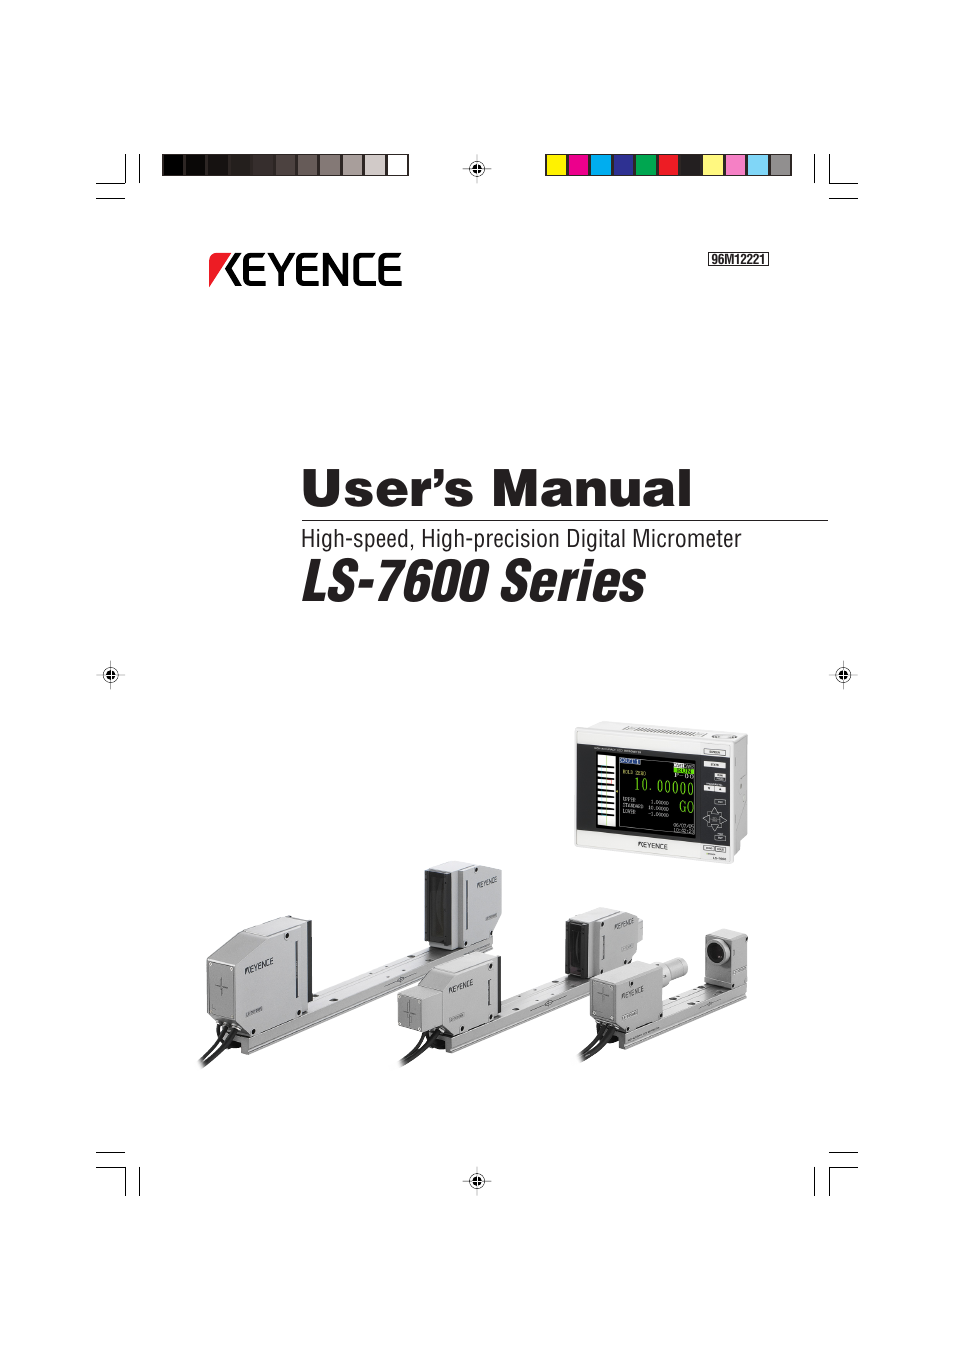 Keyence Ls 7600 User Manual 220 Pages